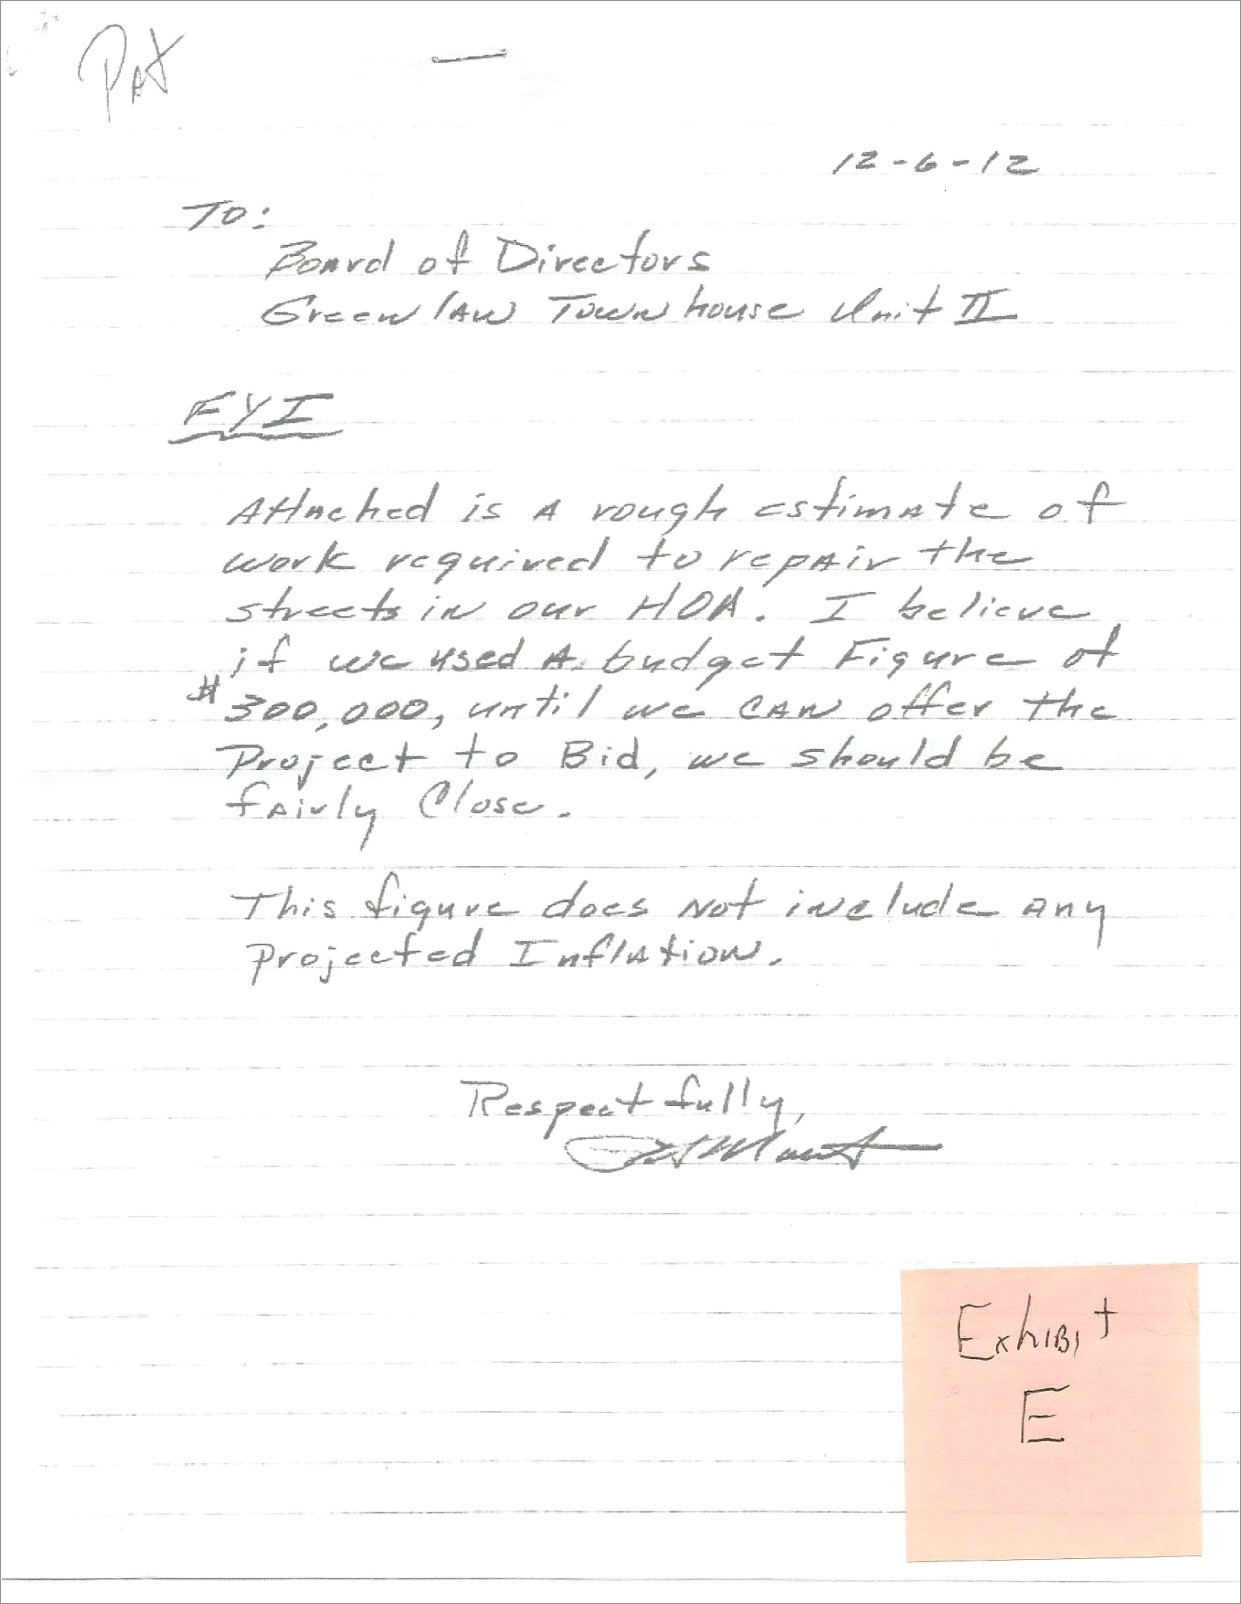 Sample Letter To Hoa Requesting Fence